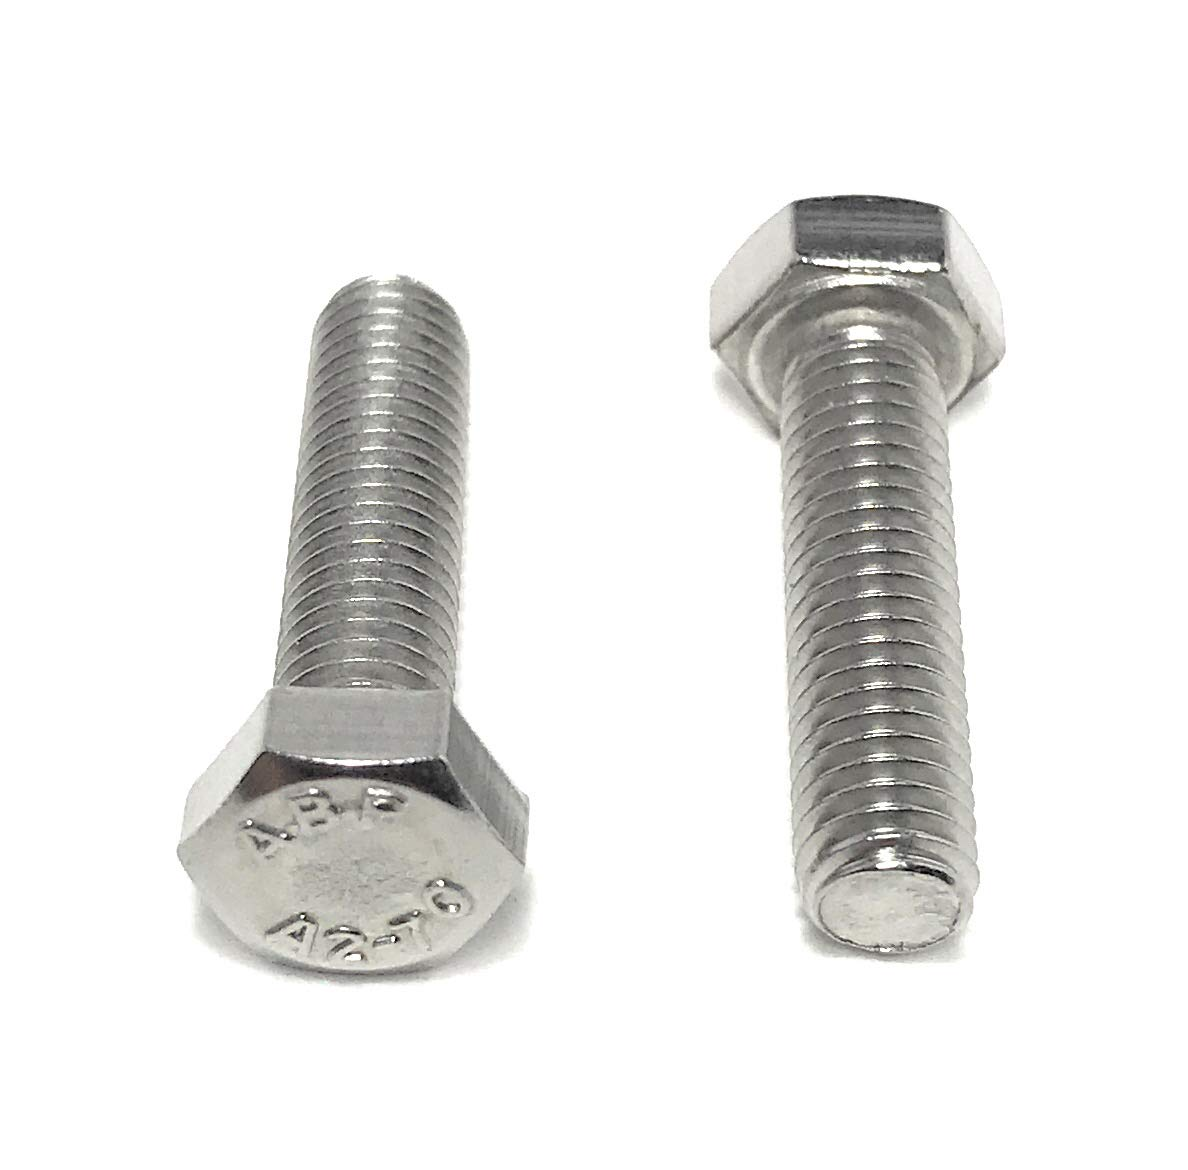 Fully Threaded Bolts M5 x 20mm Hexagon Head Set Screws A2 Stainless Steel